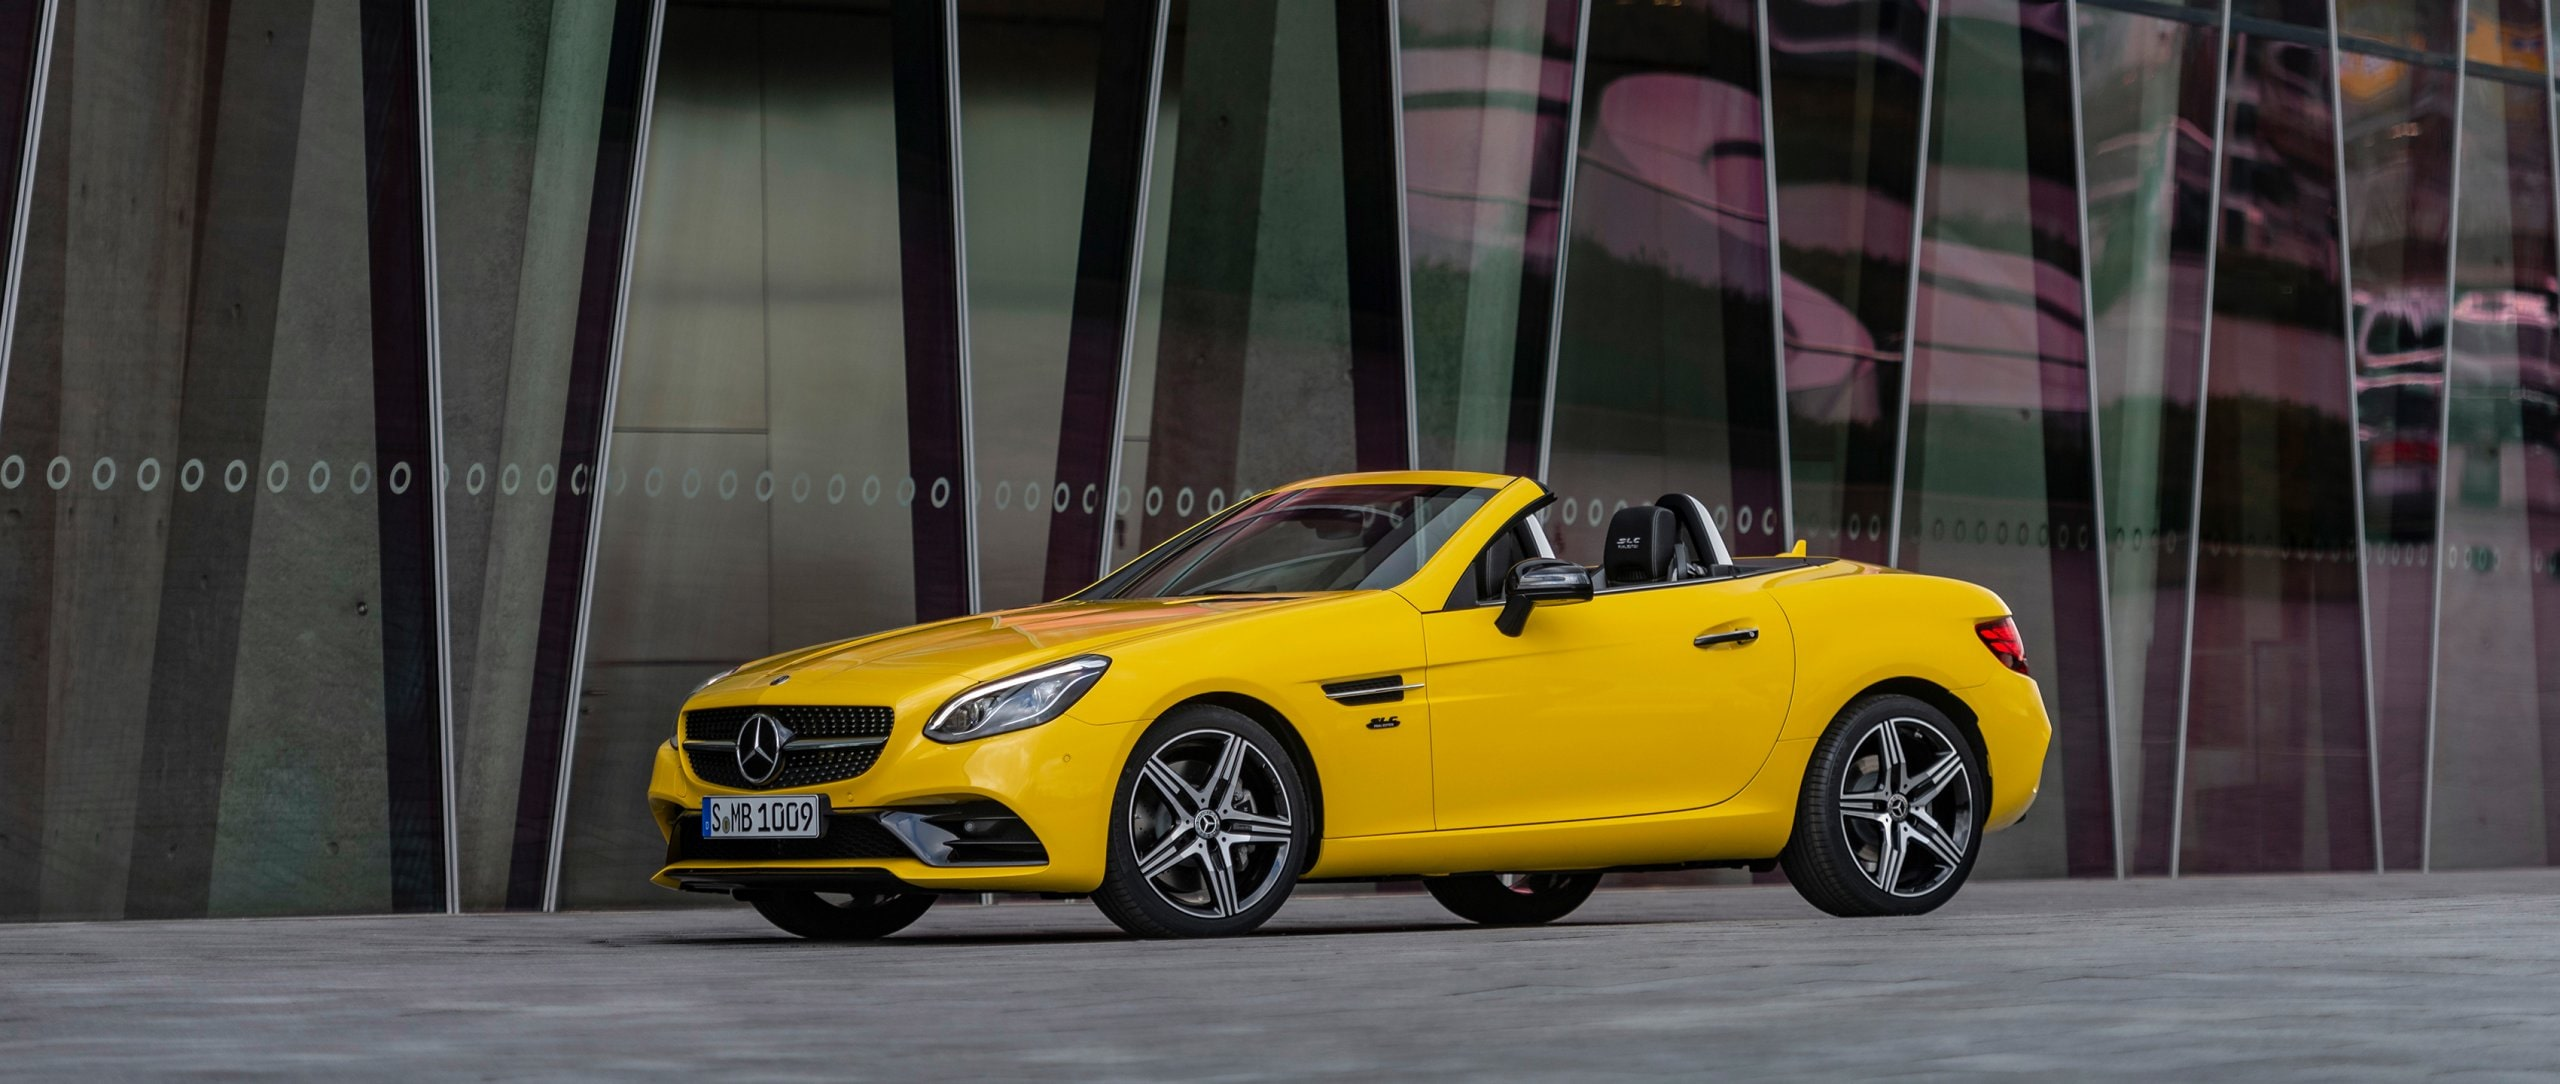 Mercedes-Benz SLC 300 Final Edition (R 172) in Sonnengelb mit Night-Paket und AMG Line Exterieur.